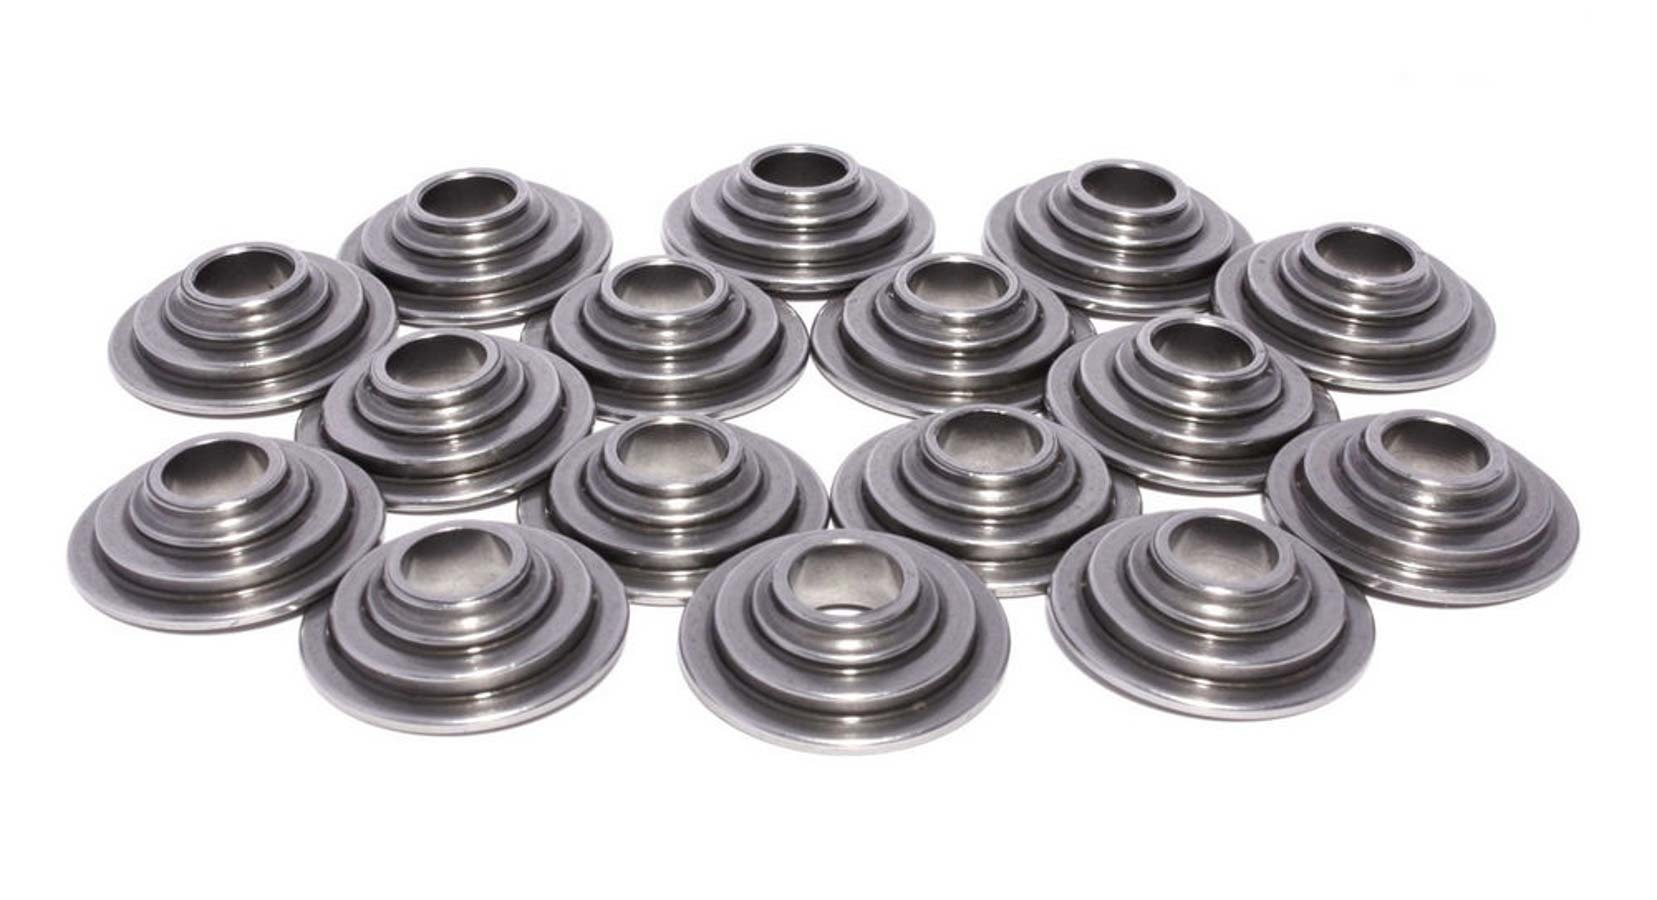 Comp Cams 1754-16 Valve Spring Retainer, 7 Degree, 0.860 in / 0.610 in OD Steps, 1.250 in Dual Spring, Steel, Set of 16